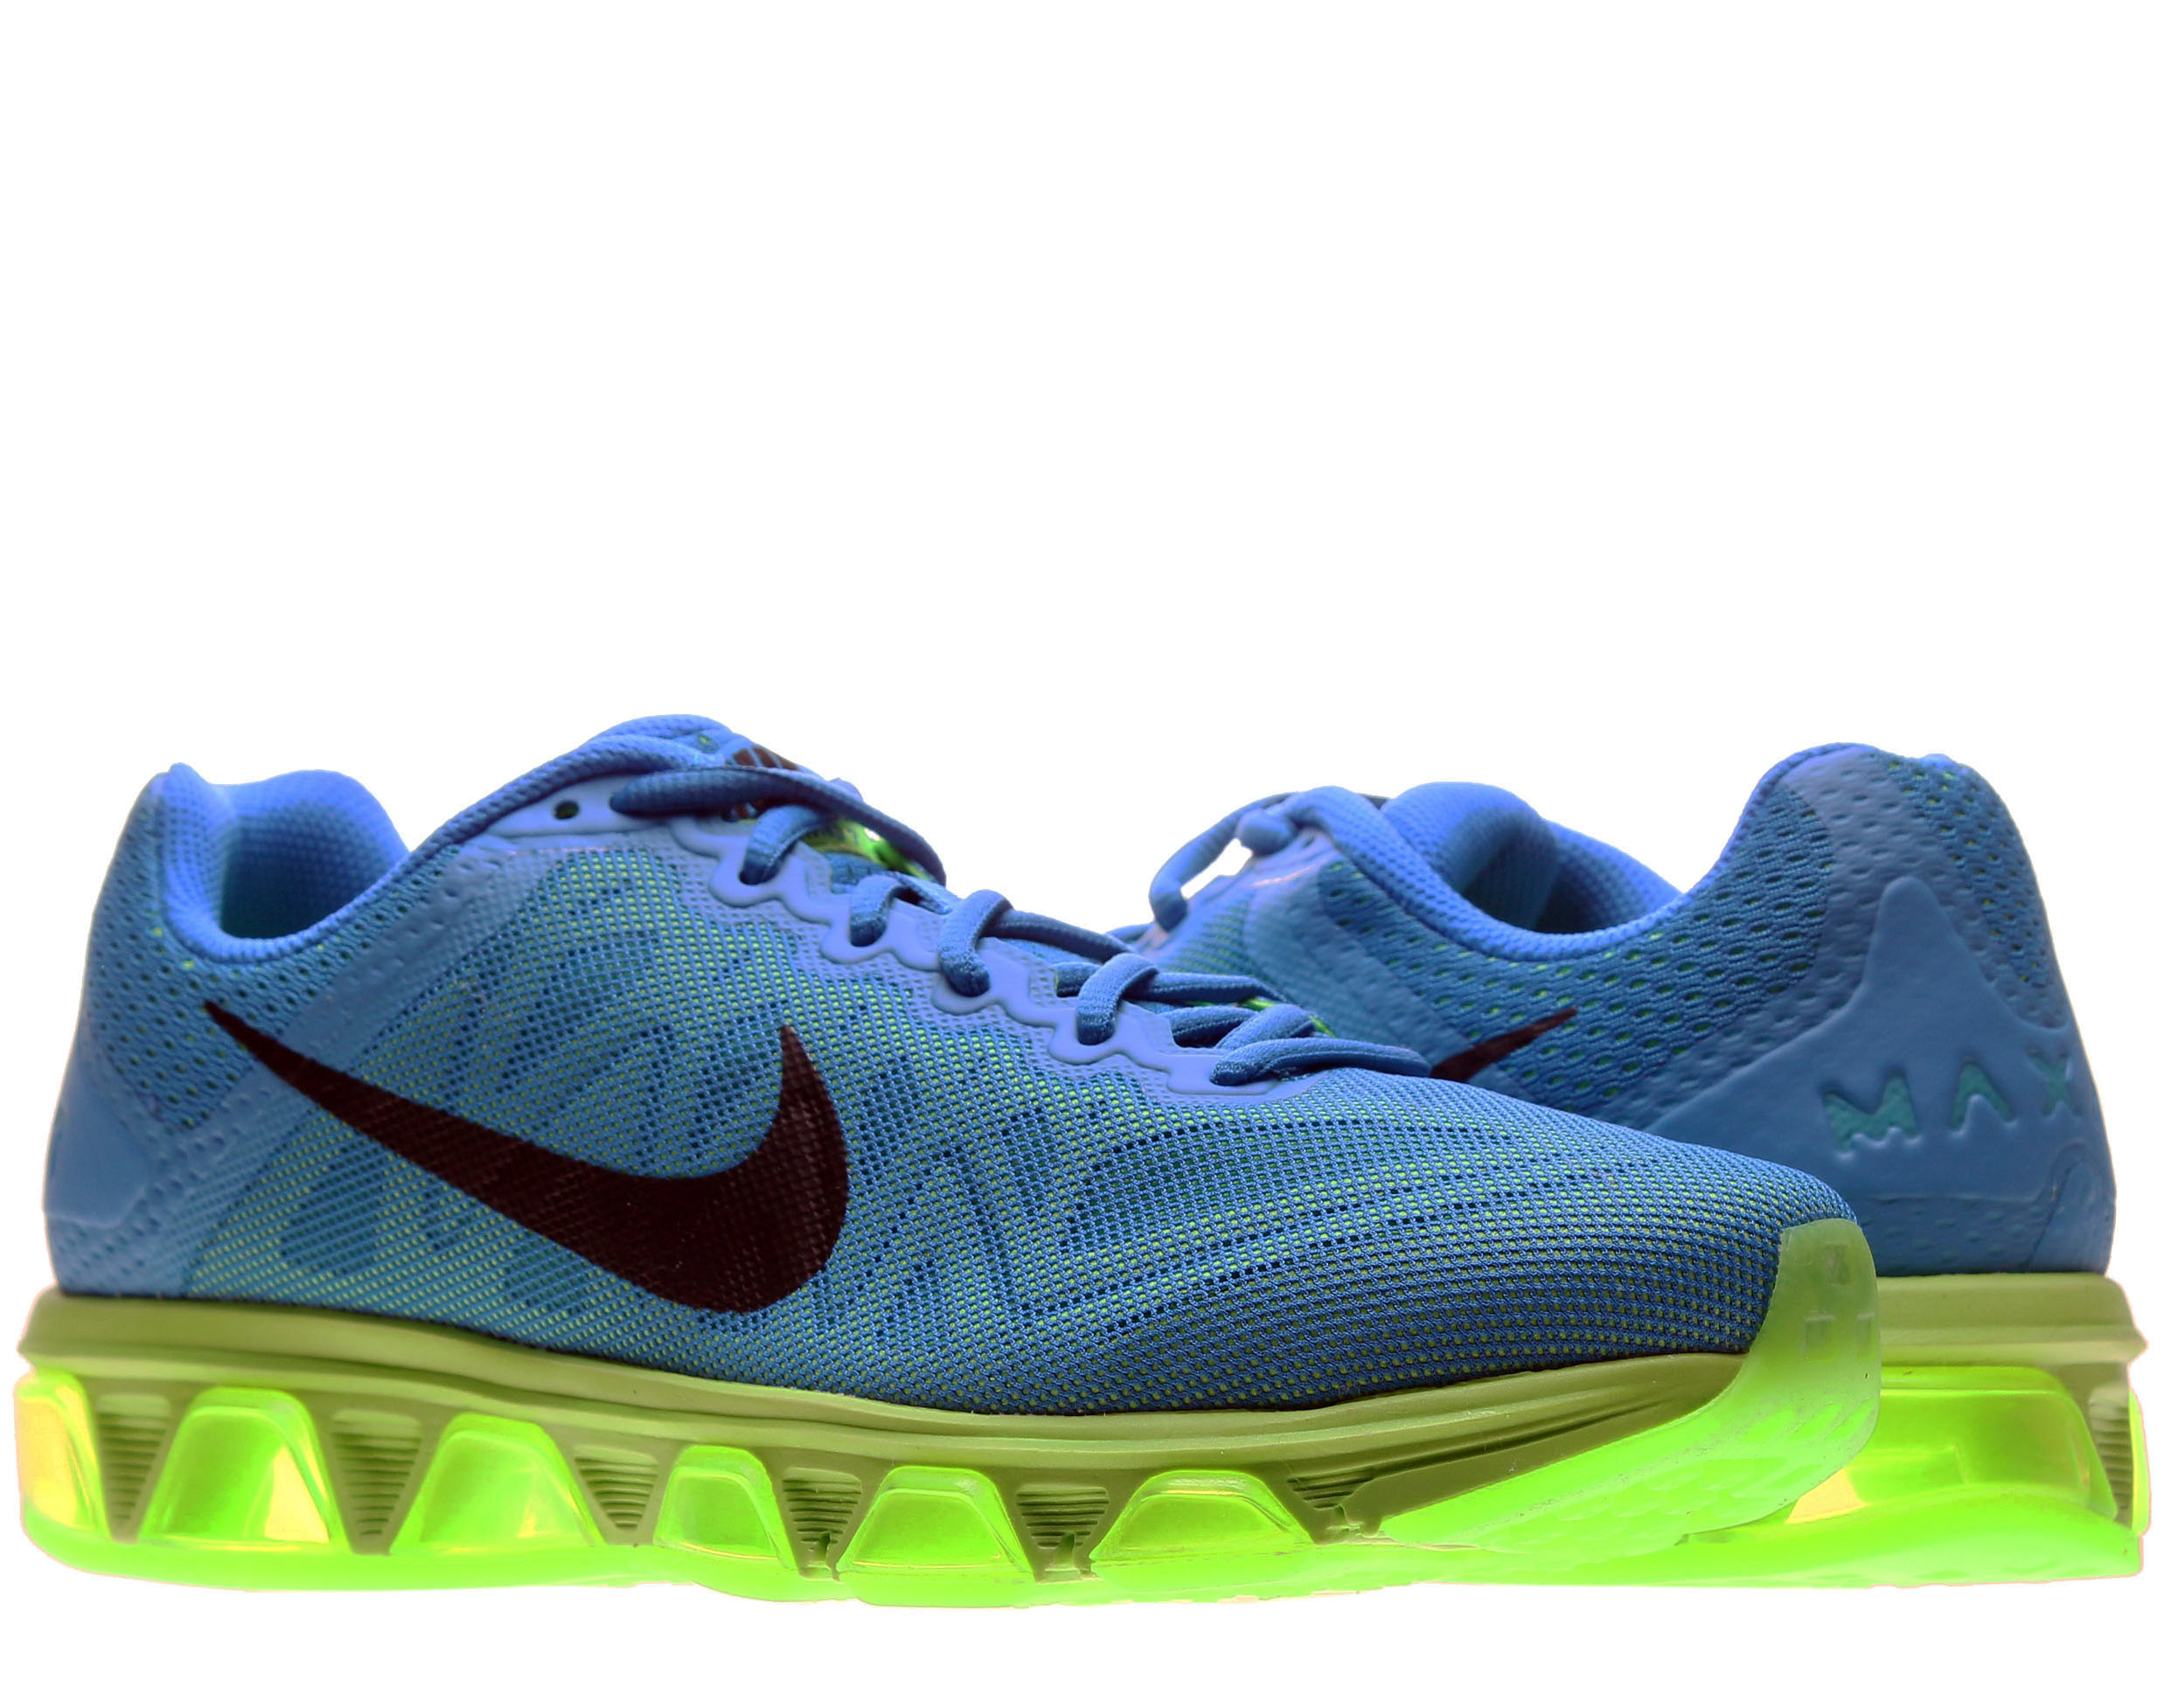 8a2350cfbe021 canada nike air max tailwind 6 photo blue electric green black mens shoes  683632 c7ae5 d2d2e